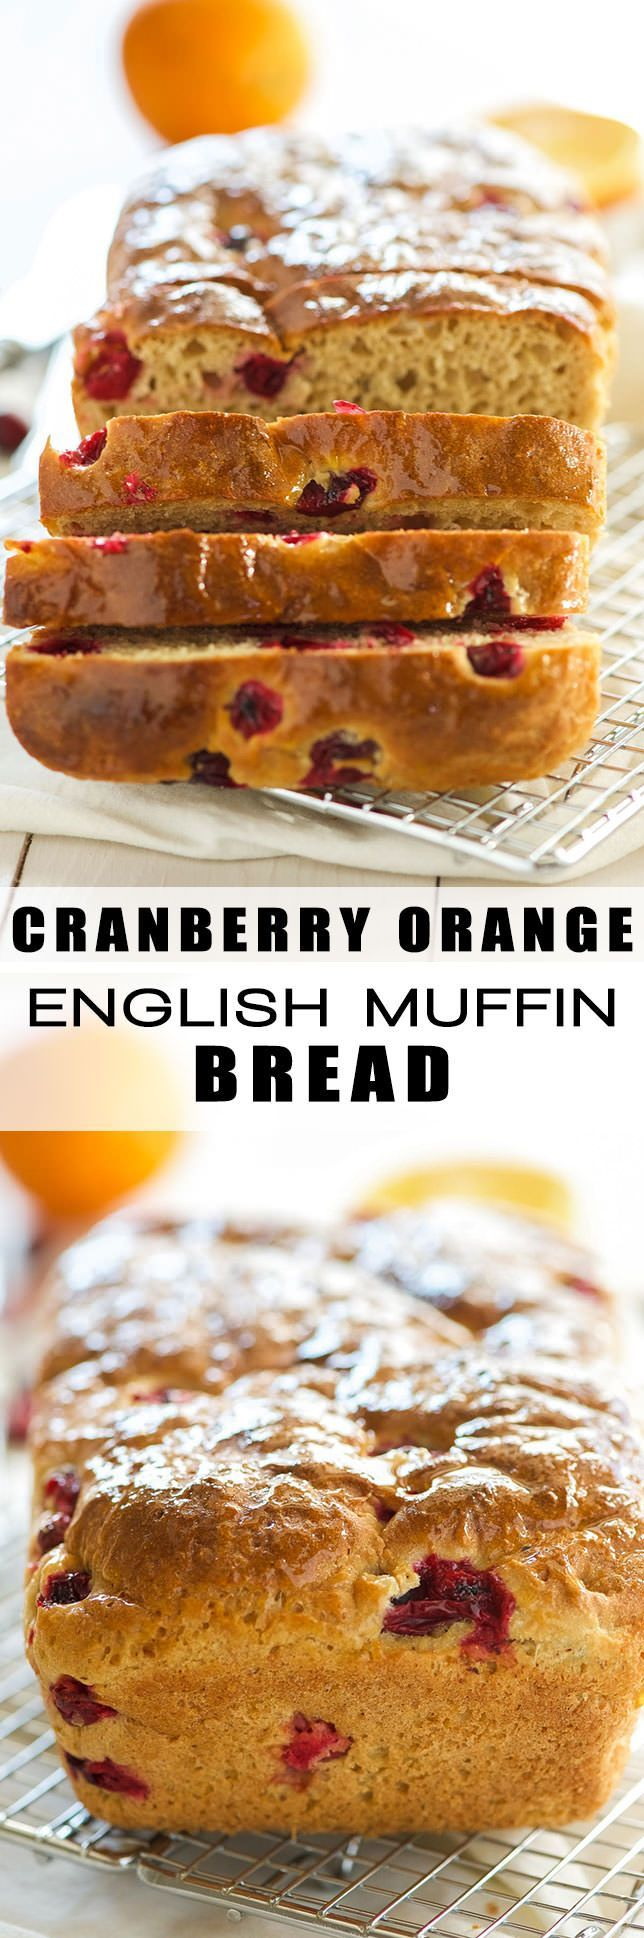 Cranberry Orange Whole Wheat English Muffin Bread is an easy quick bread and a heart healthy way to start your morning! Perfect toasted, spread with a bit of butter and a cup of coffee!